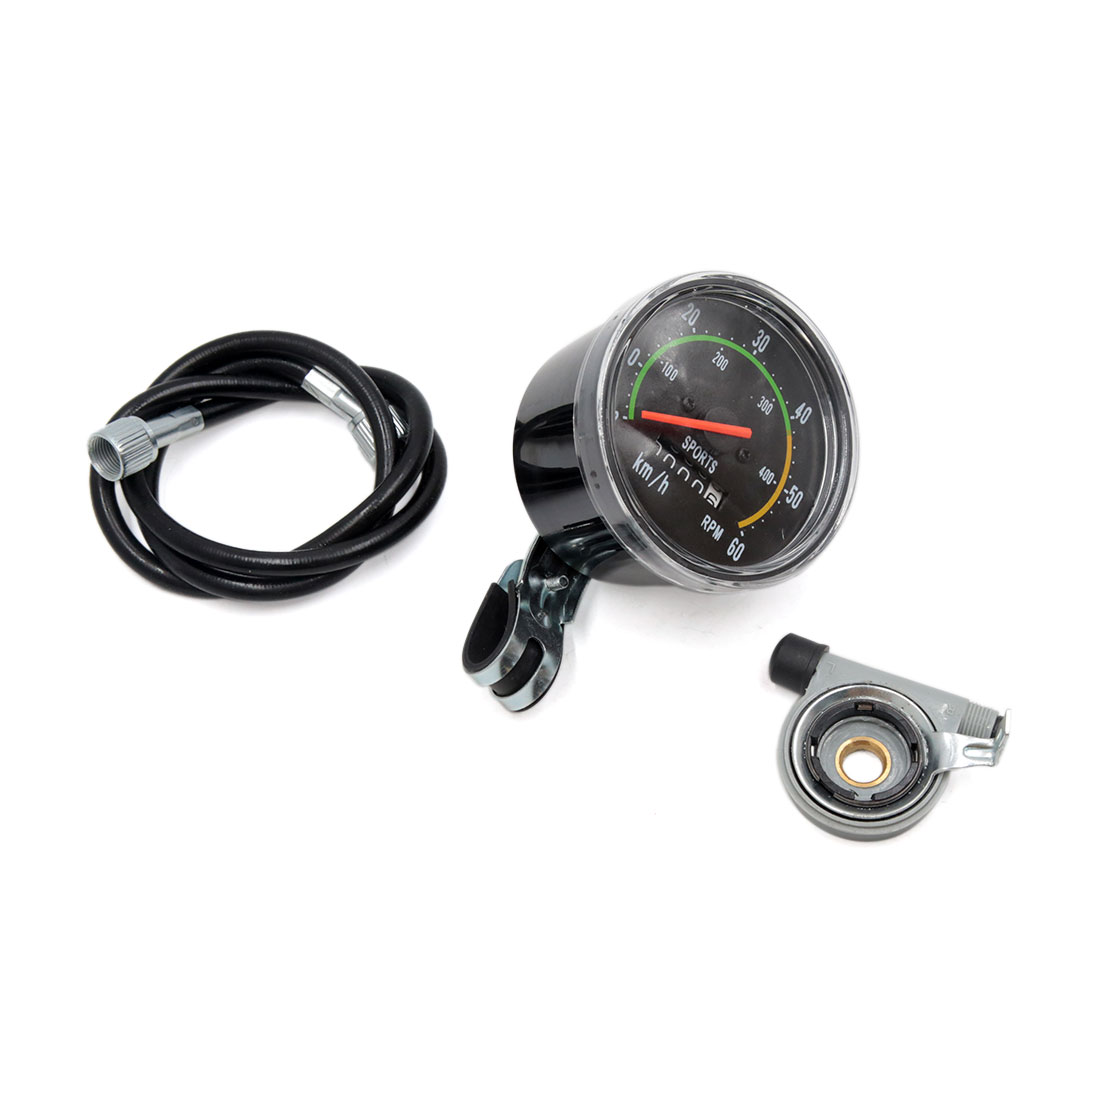 Universal Black Mechanical Resettable Odometer Speedometer for Exercycle Bicycle